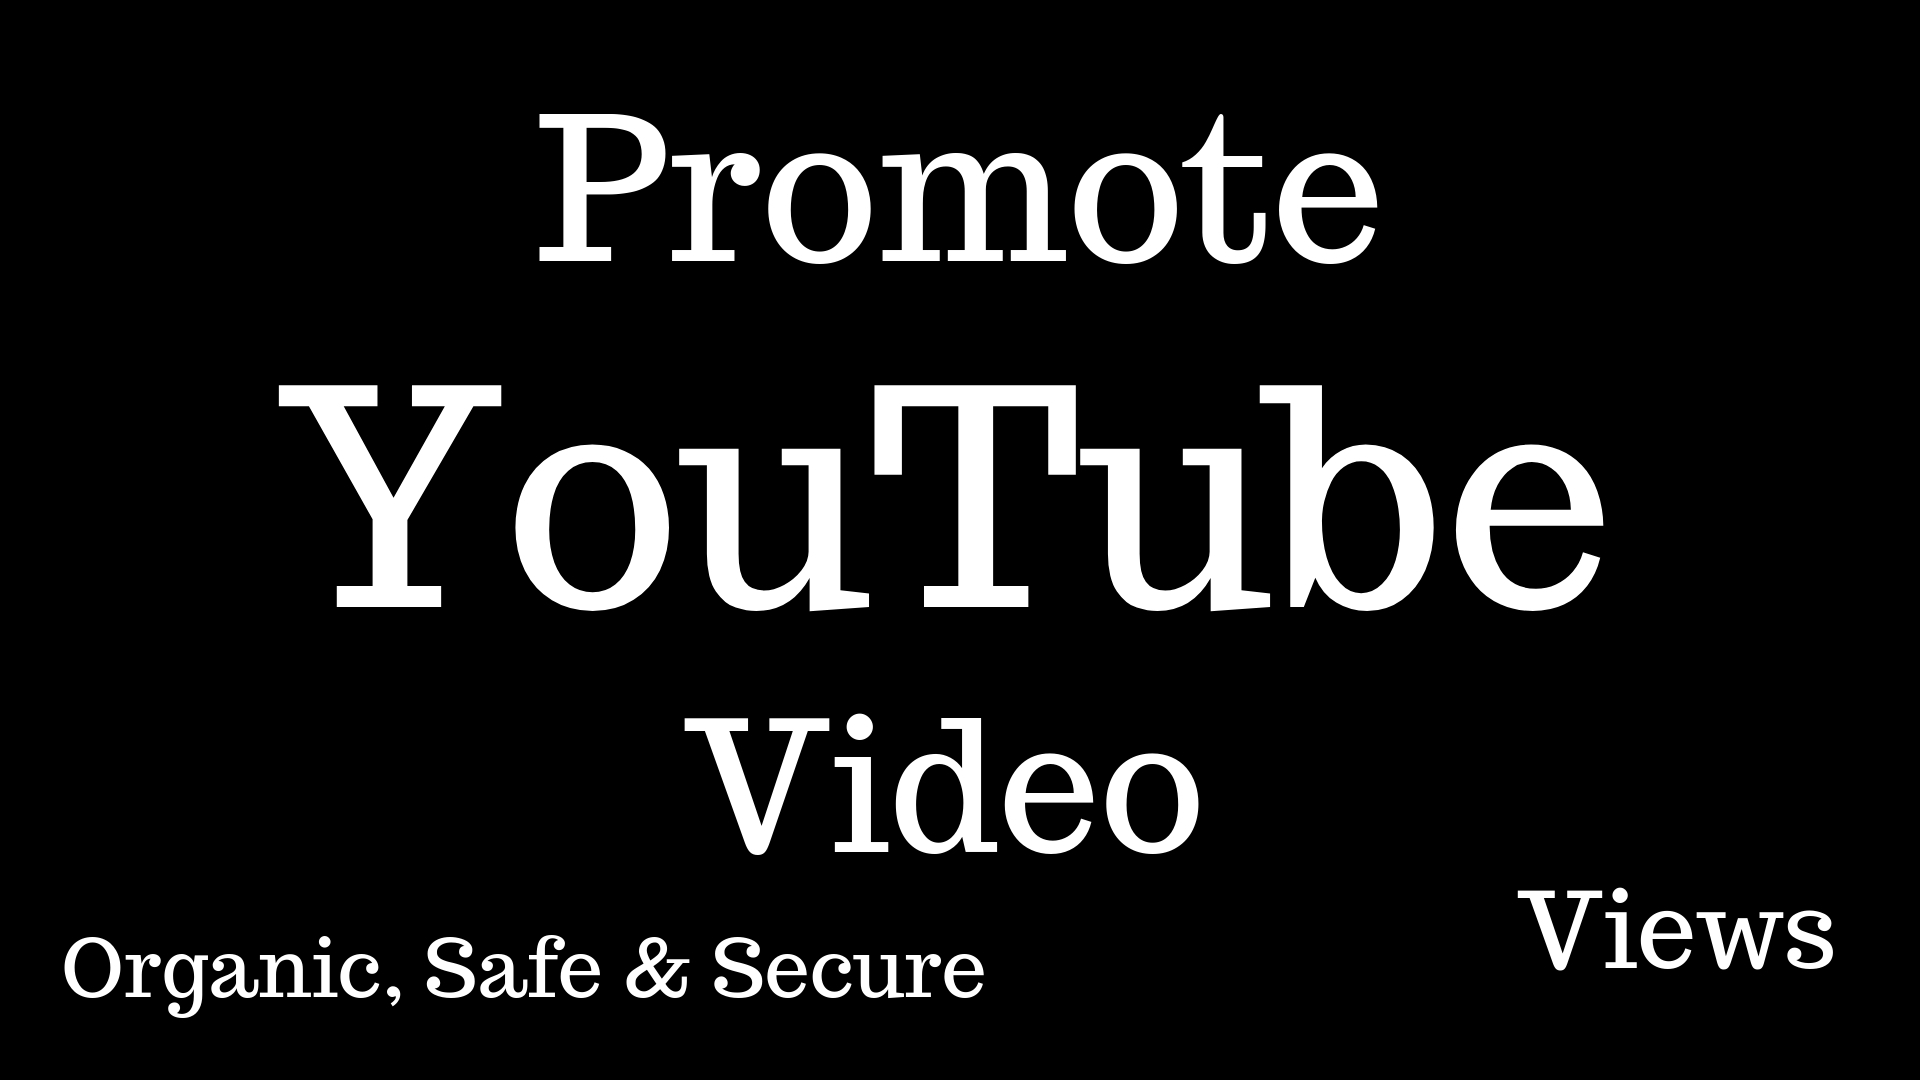 YouTube Video Promotion Organic safe and secure best for Ranking